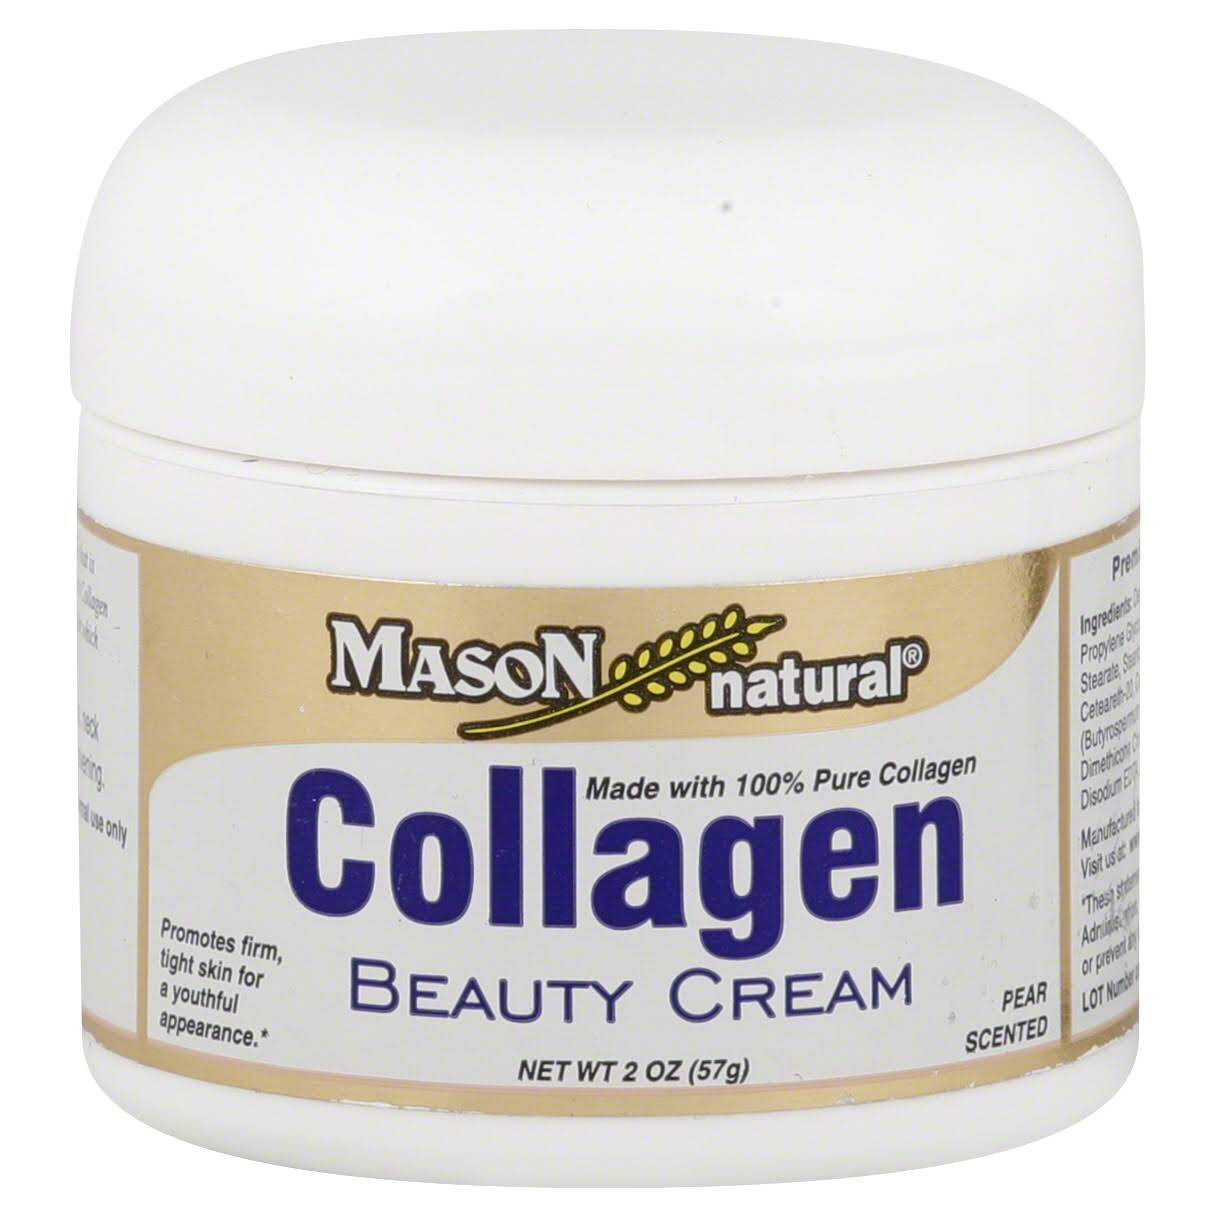 Mason Natural Pure Collagen Beauty Cream - 2oz, Pear Scented